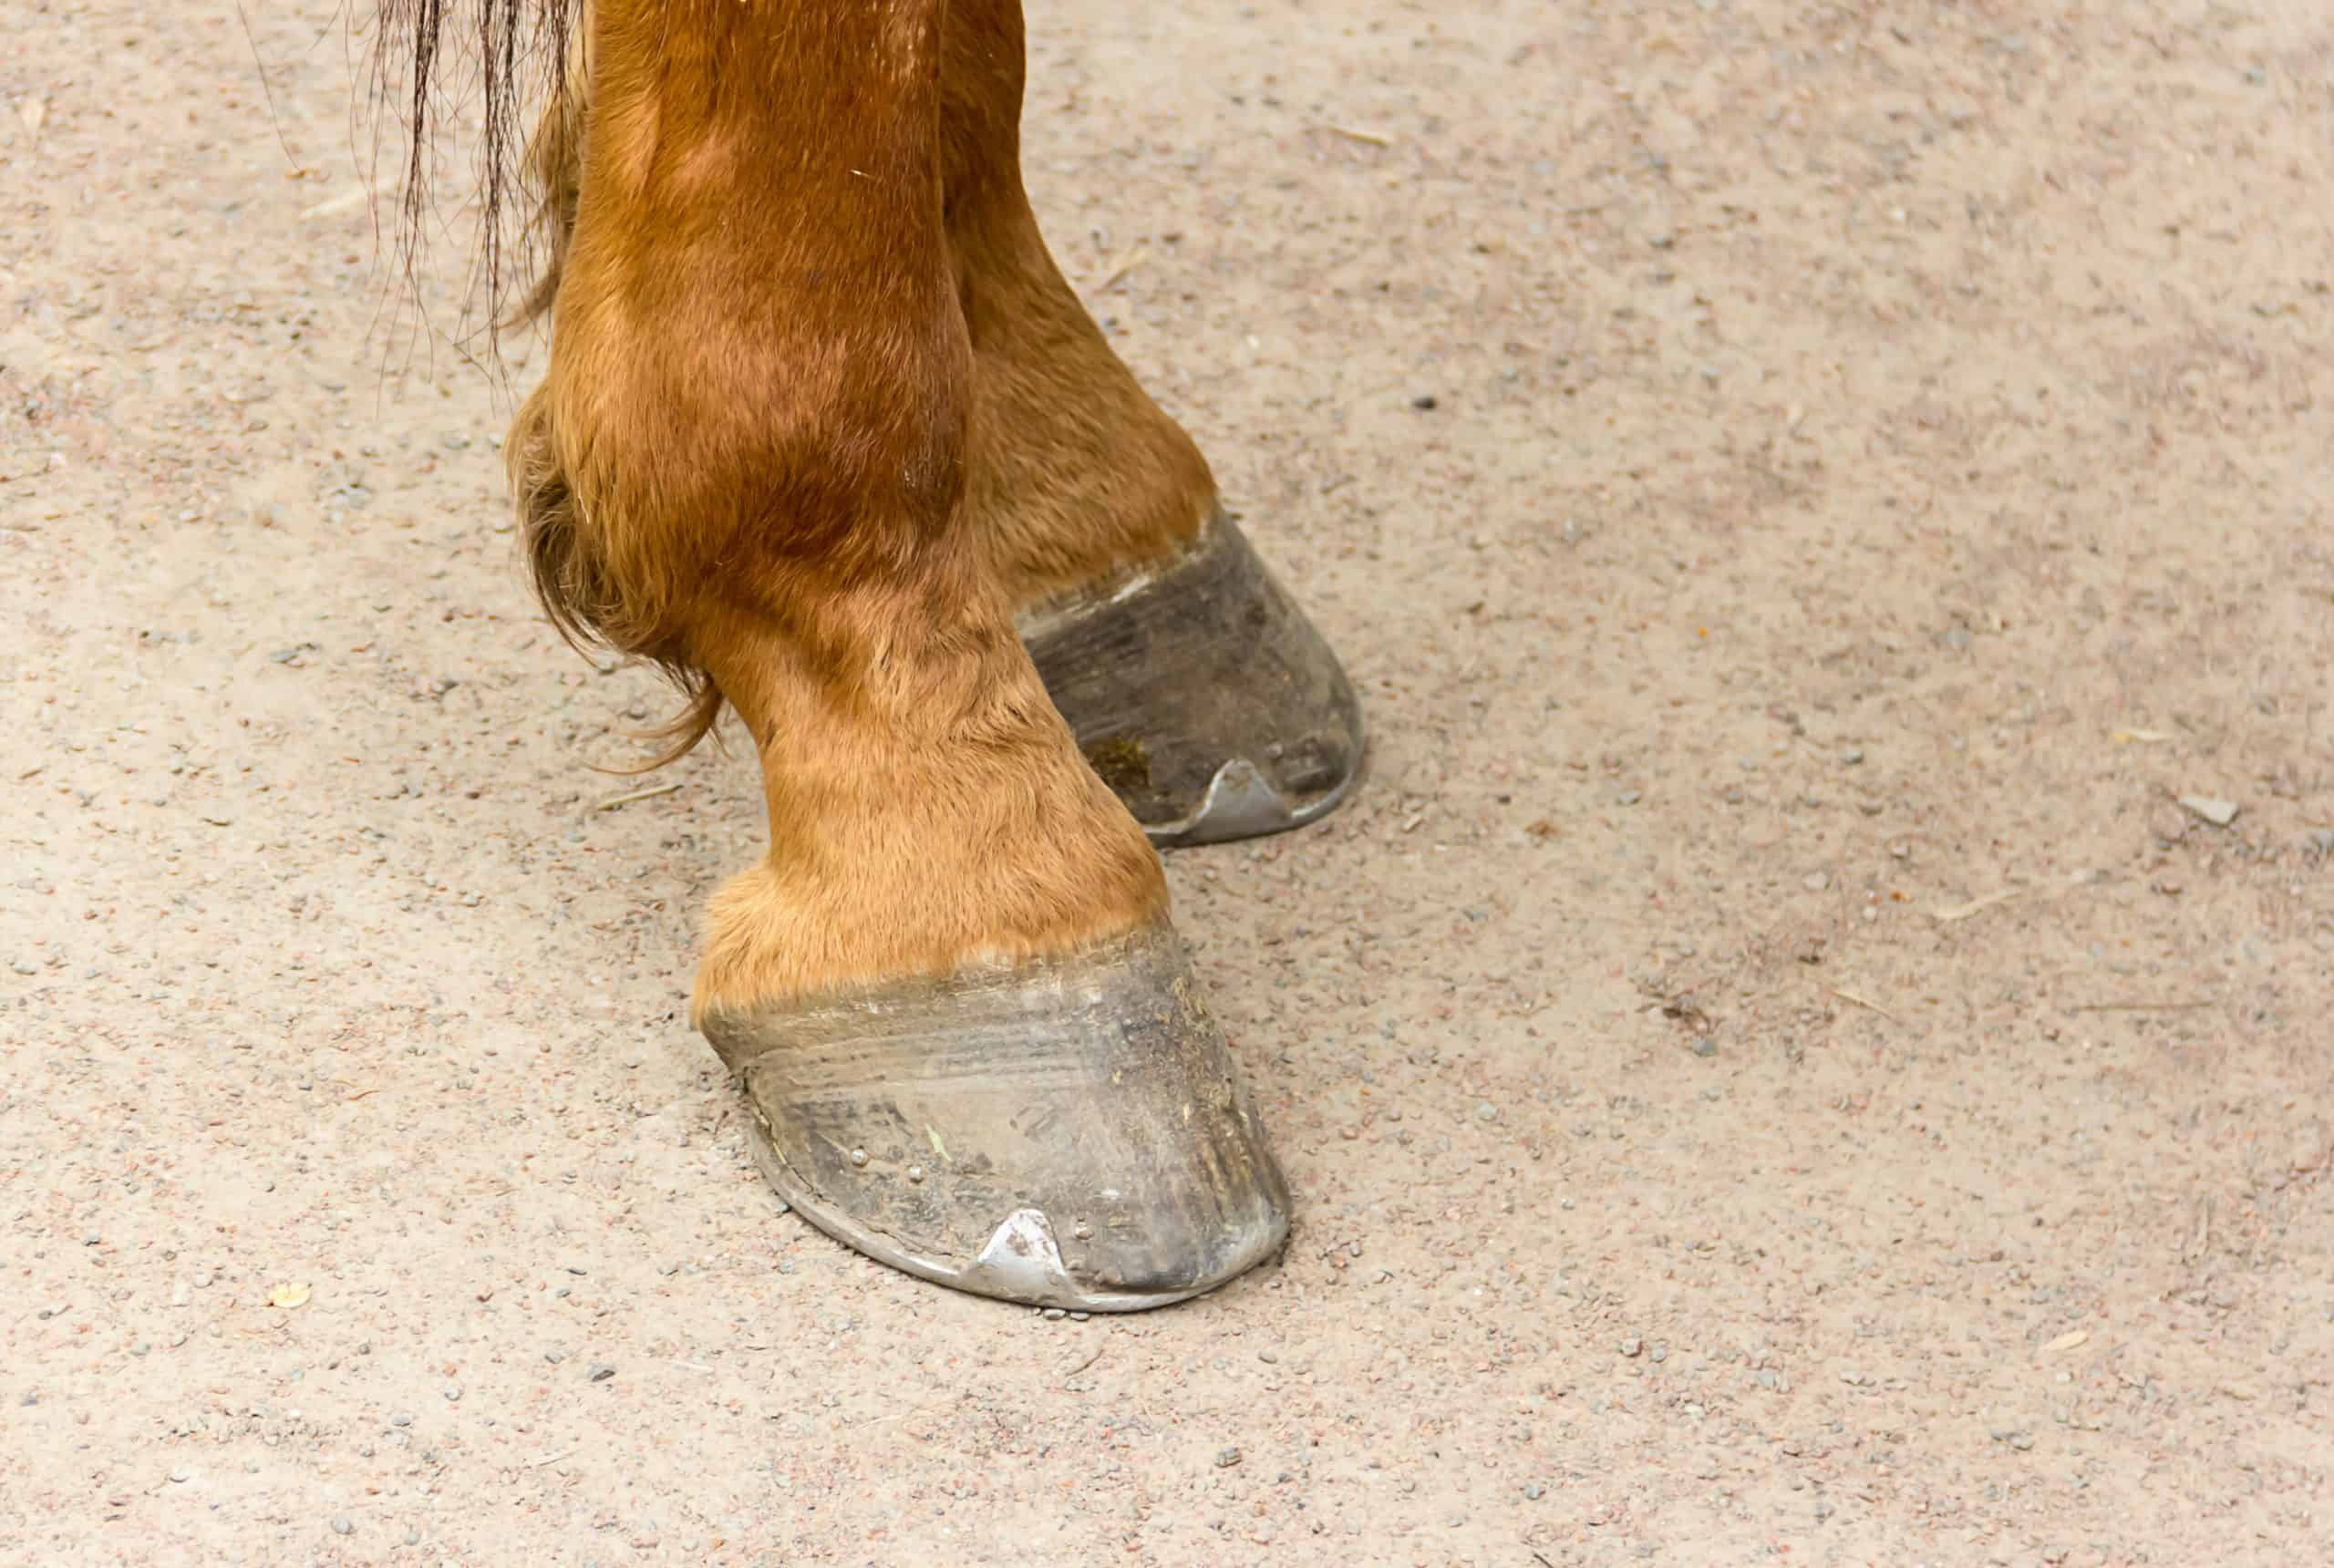 Metal horseshoe on the hooves of a young brown horse close-up against the ground